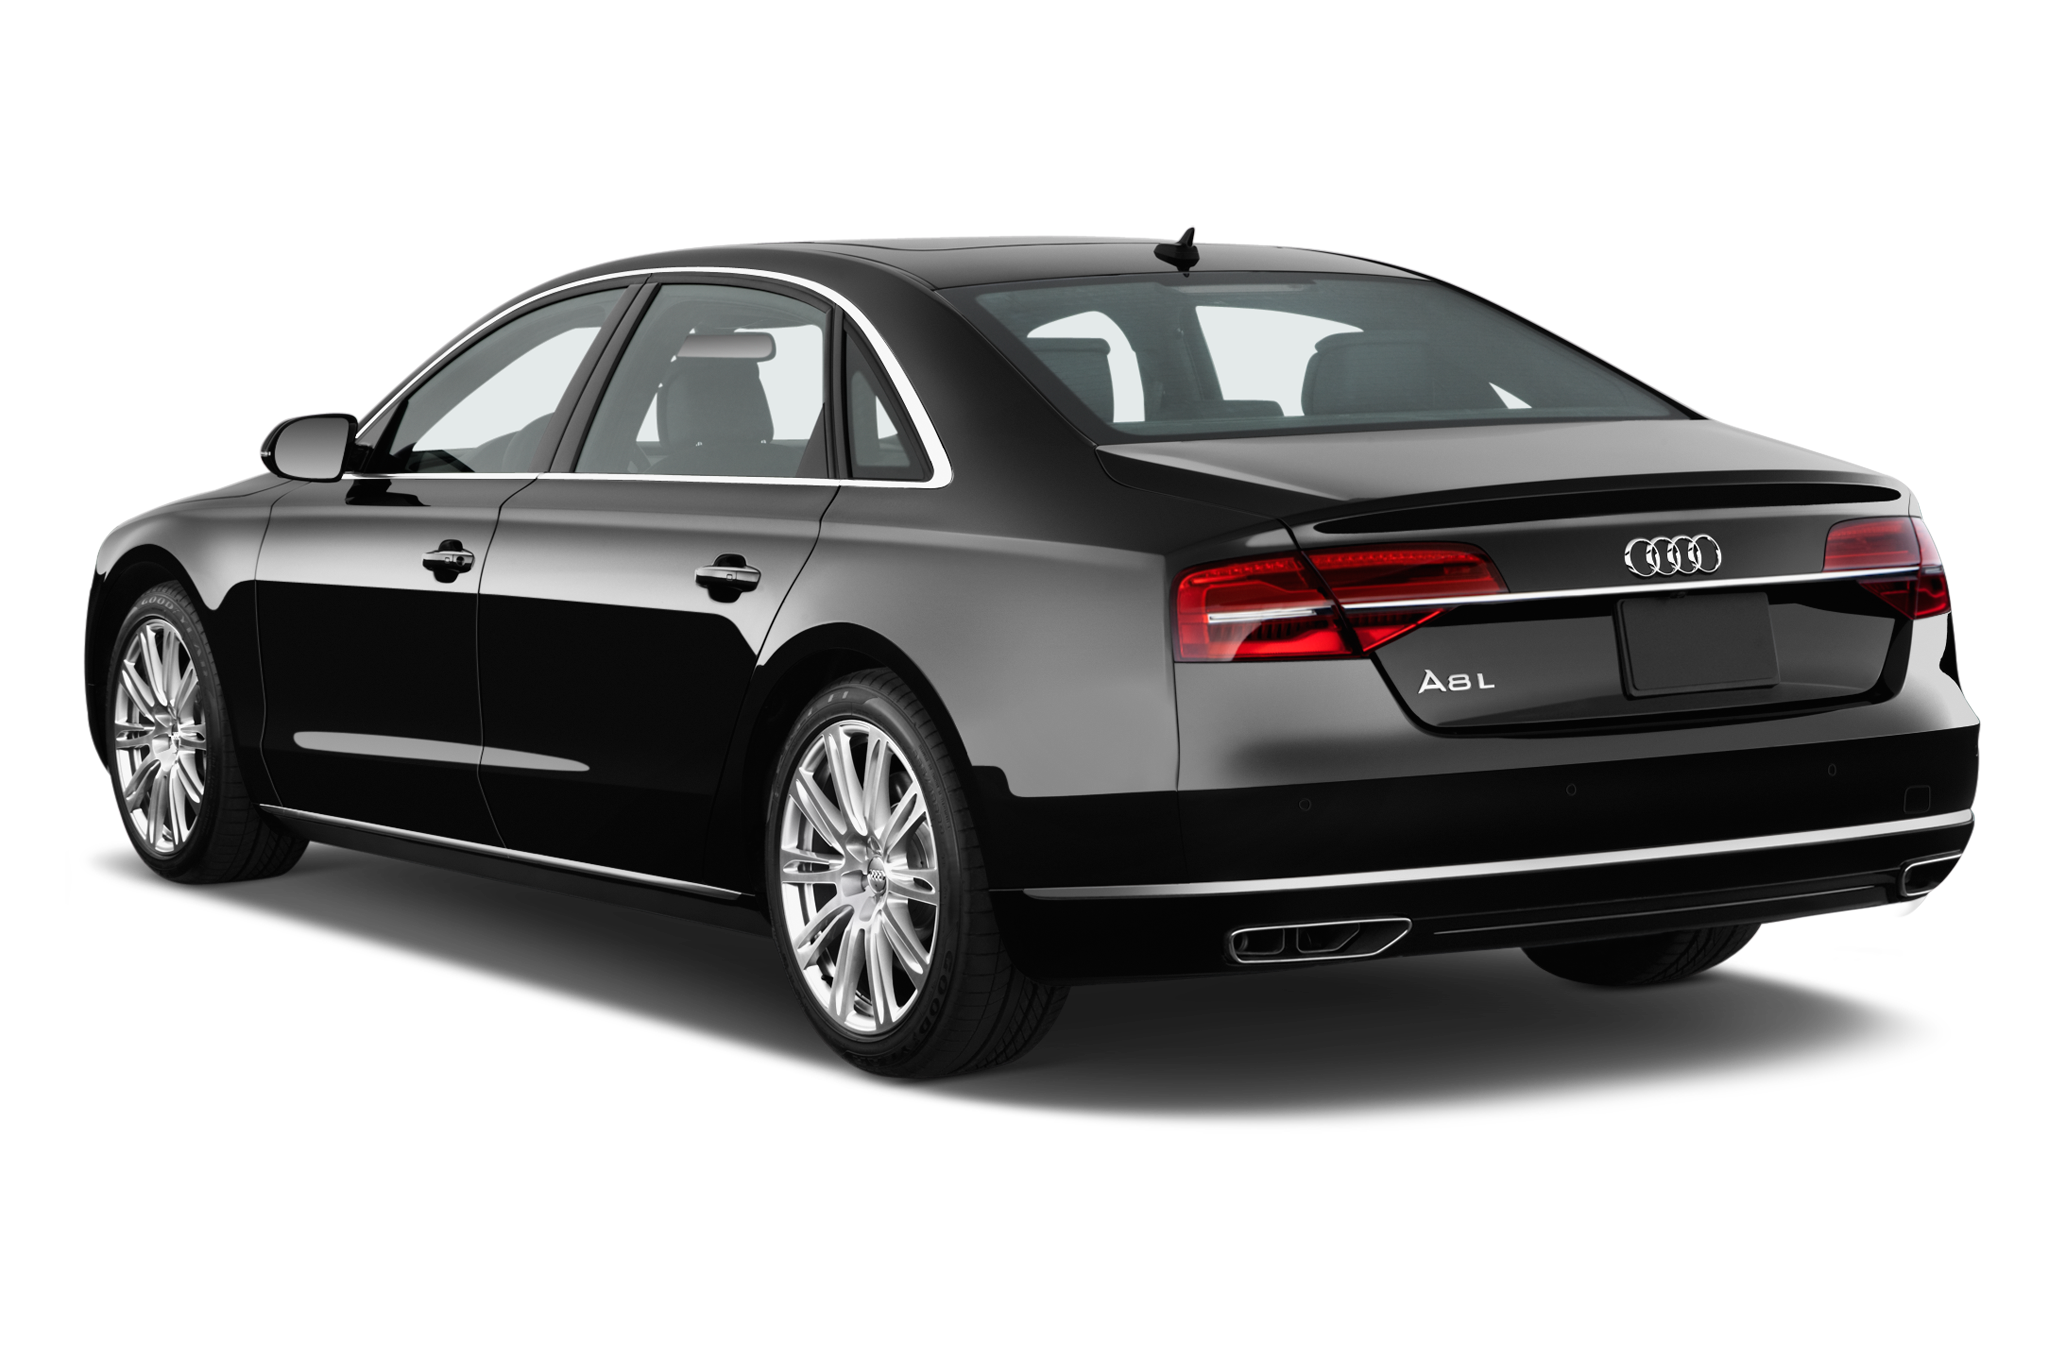 2016 audi a8 l gains 4 0t sport model with extra power. Black Bedroom Furniture Sets. Home Design Ideas